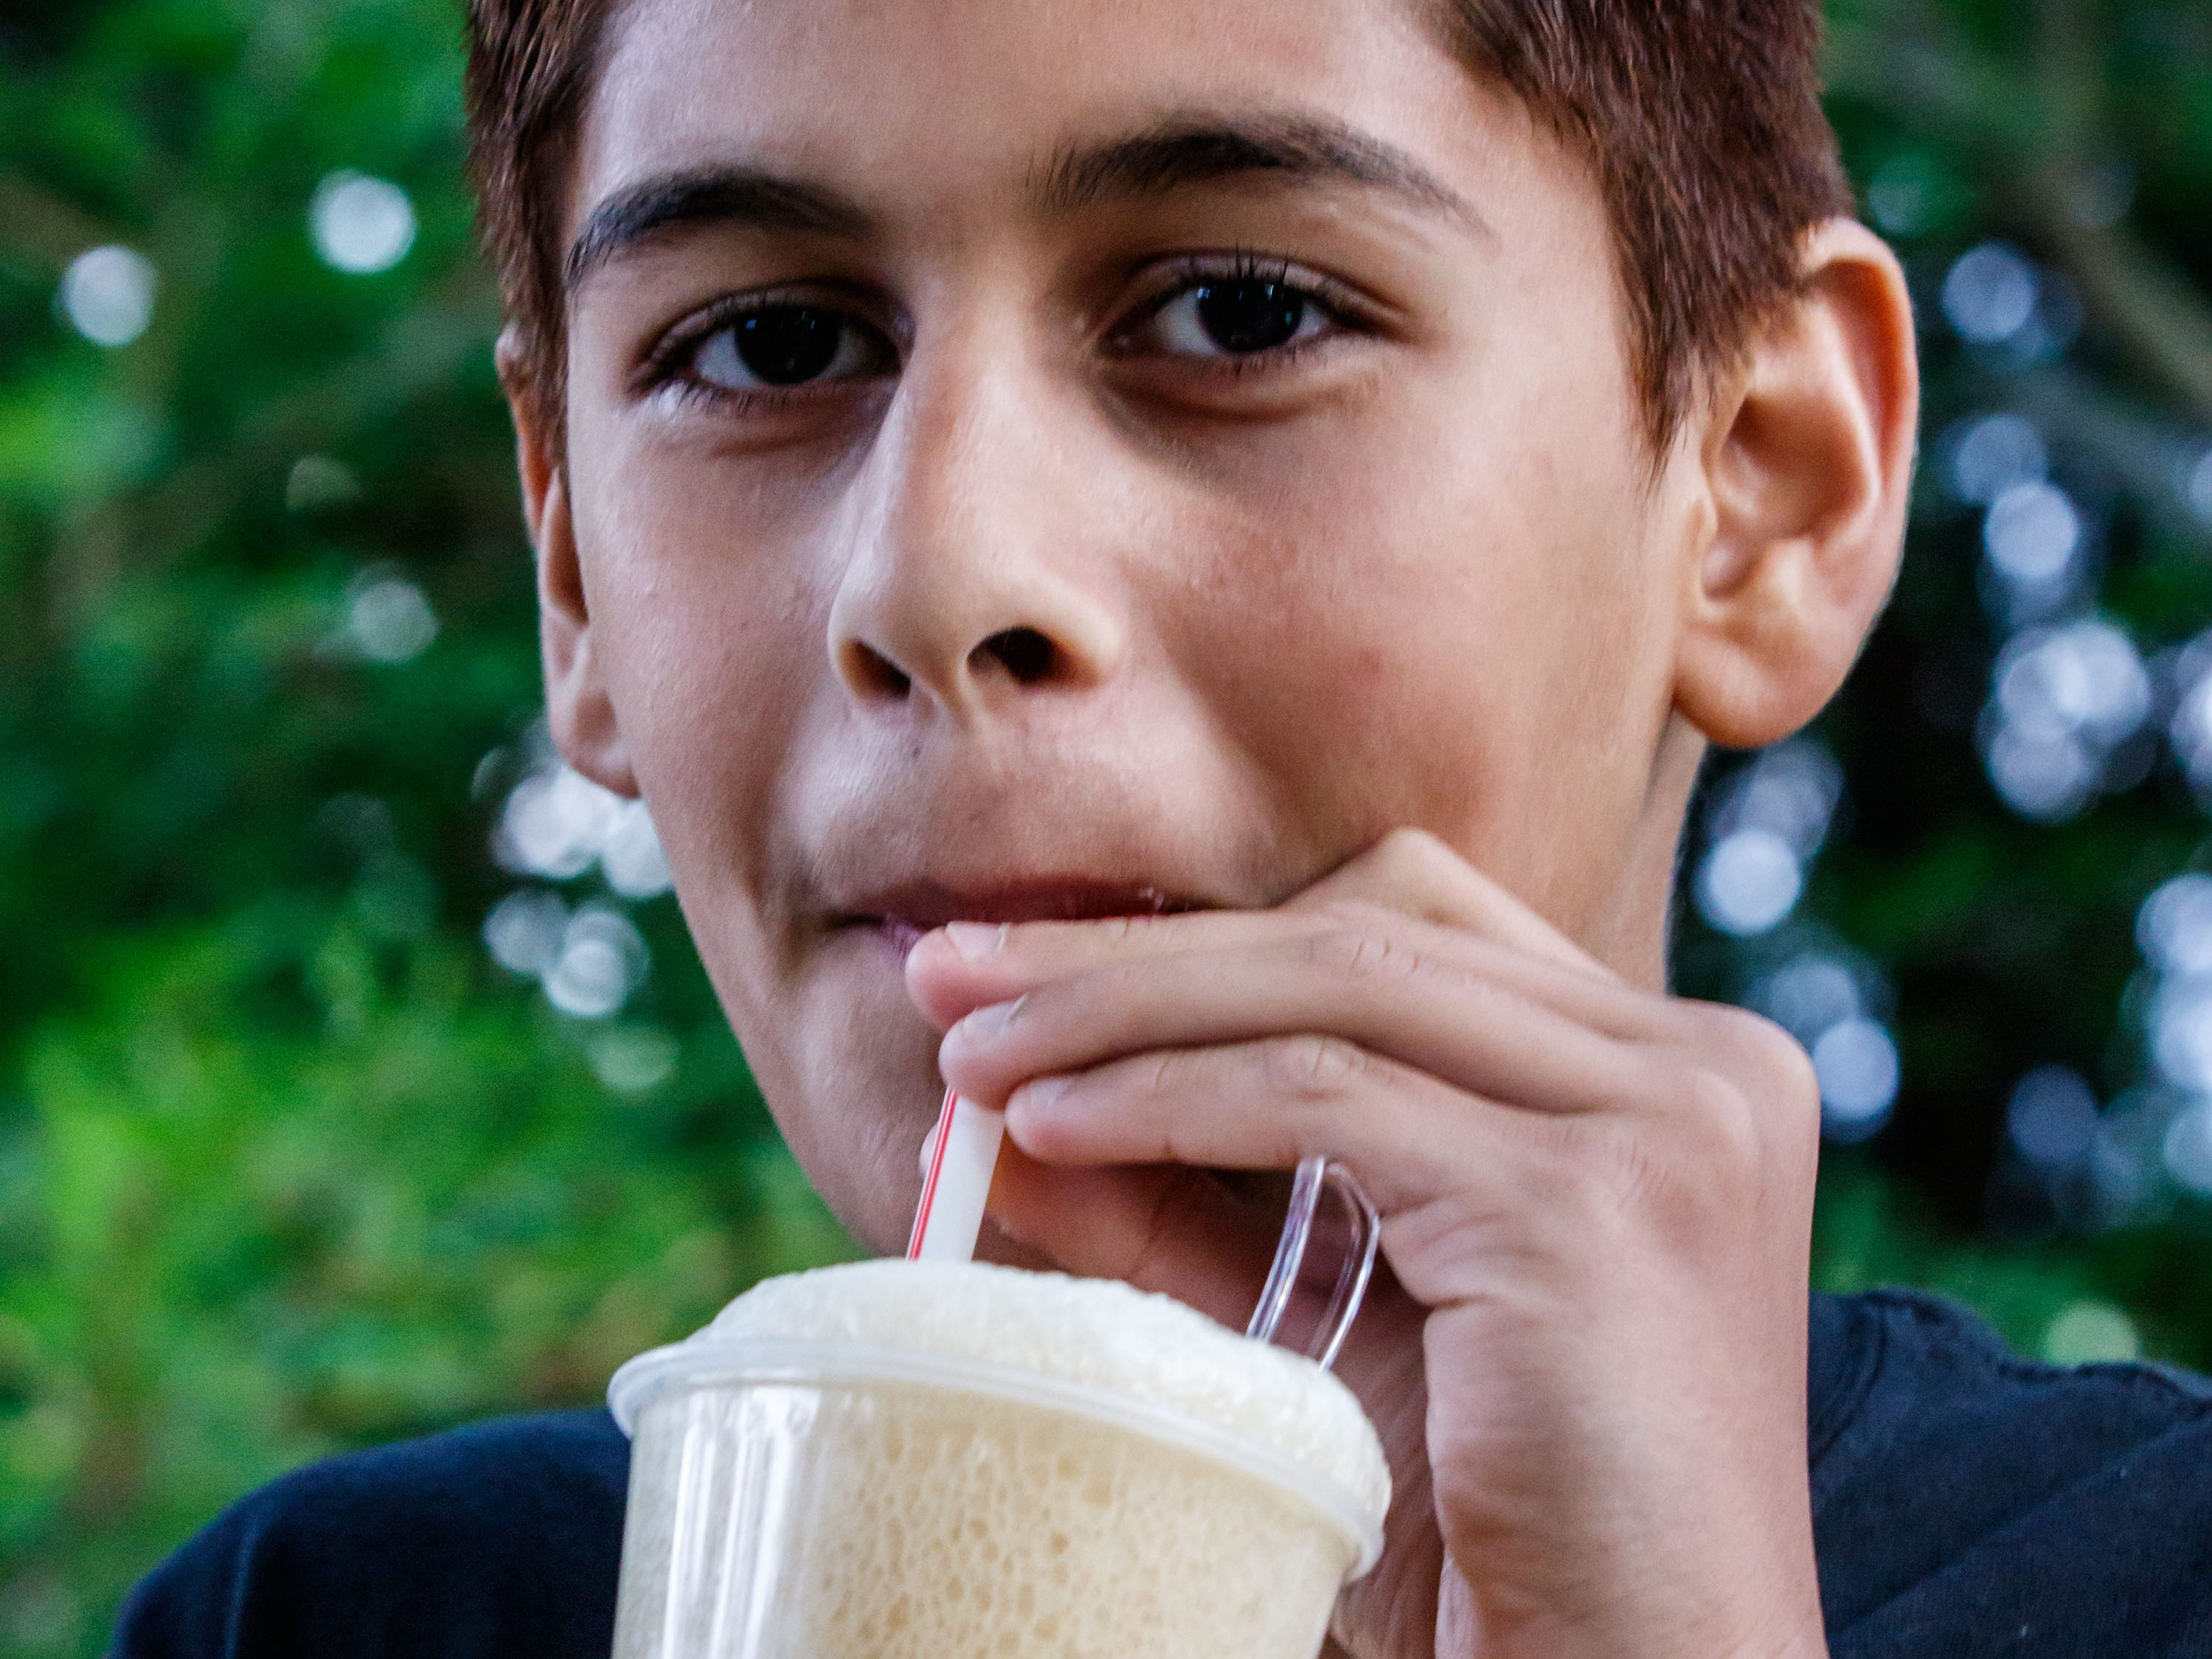 Jai Sen, 13, of Brookfield enjoys a root beer float during the Brookfield Public Library's Ice Cream Social on Tuesday, August 7, 2018. The free event, sponsored by Friends of the Library, celebrates the end of Summer Reading with ice cream and music.